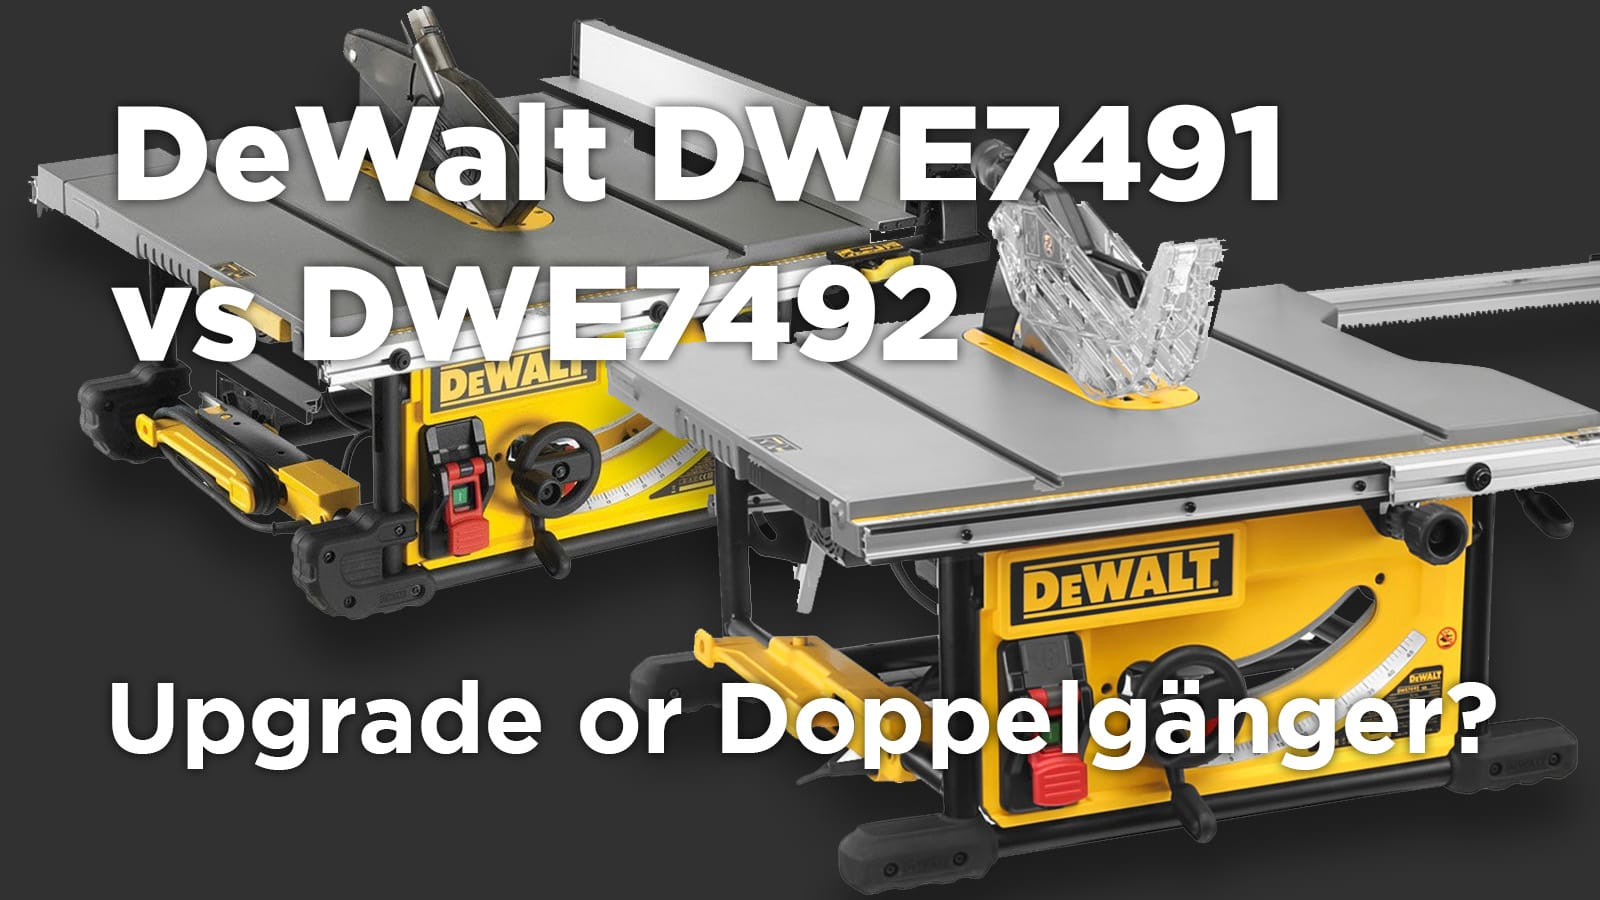 DeWalt DWE7491 vs DWE7492 Table Saw: What are the differences?